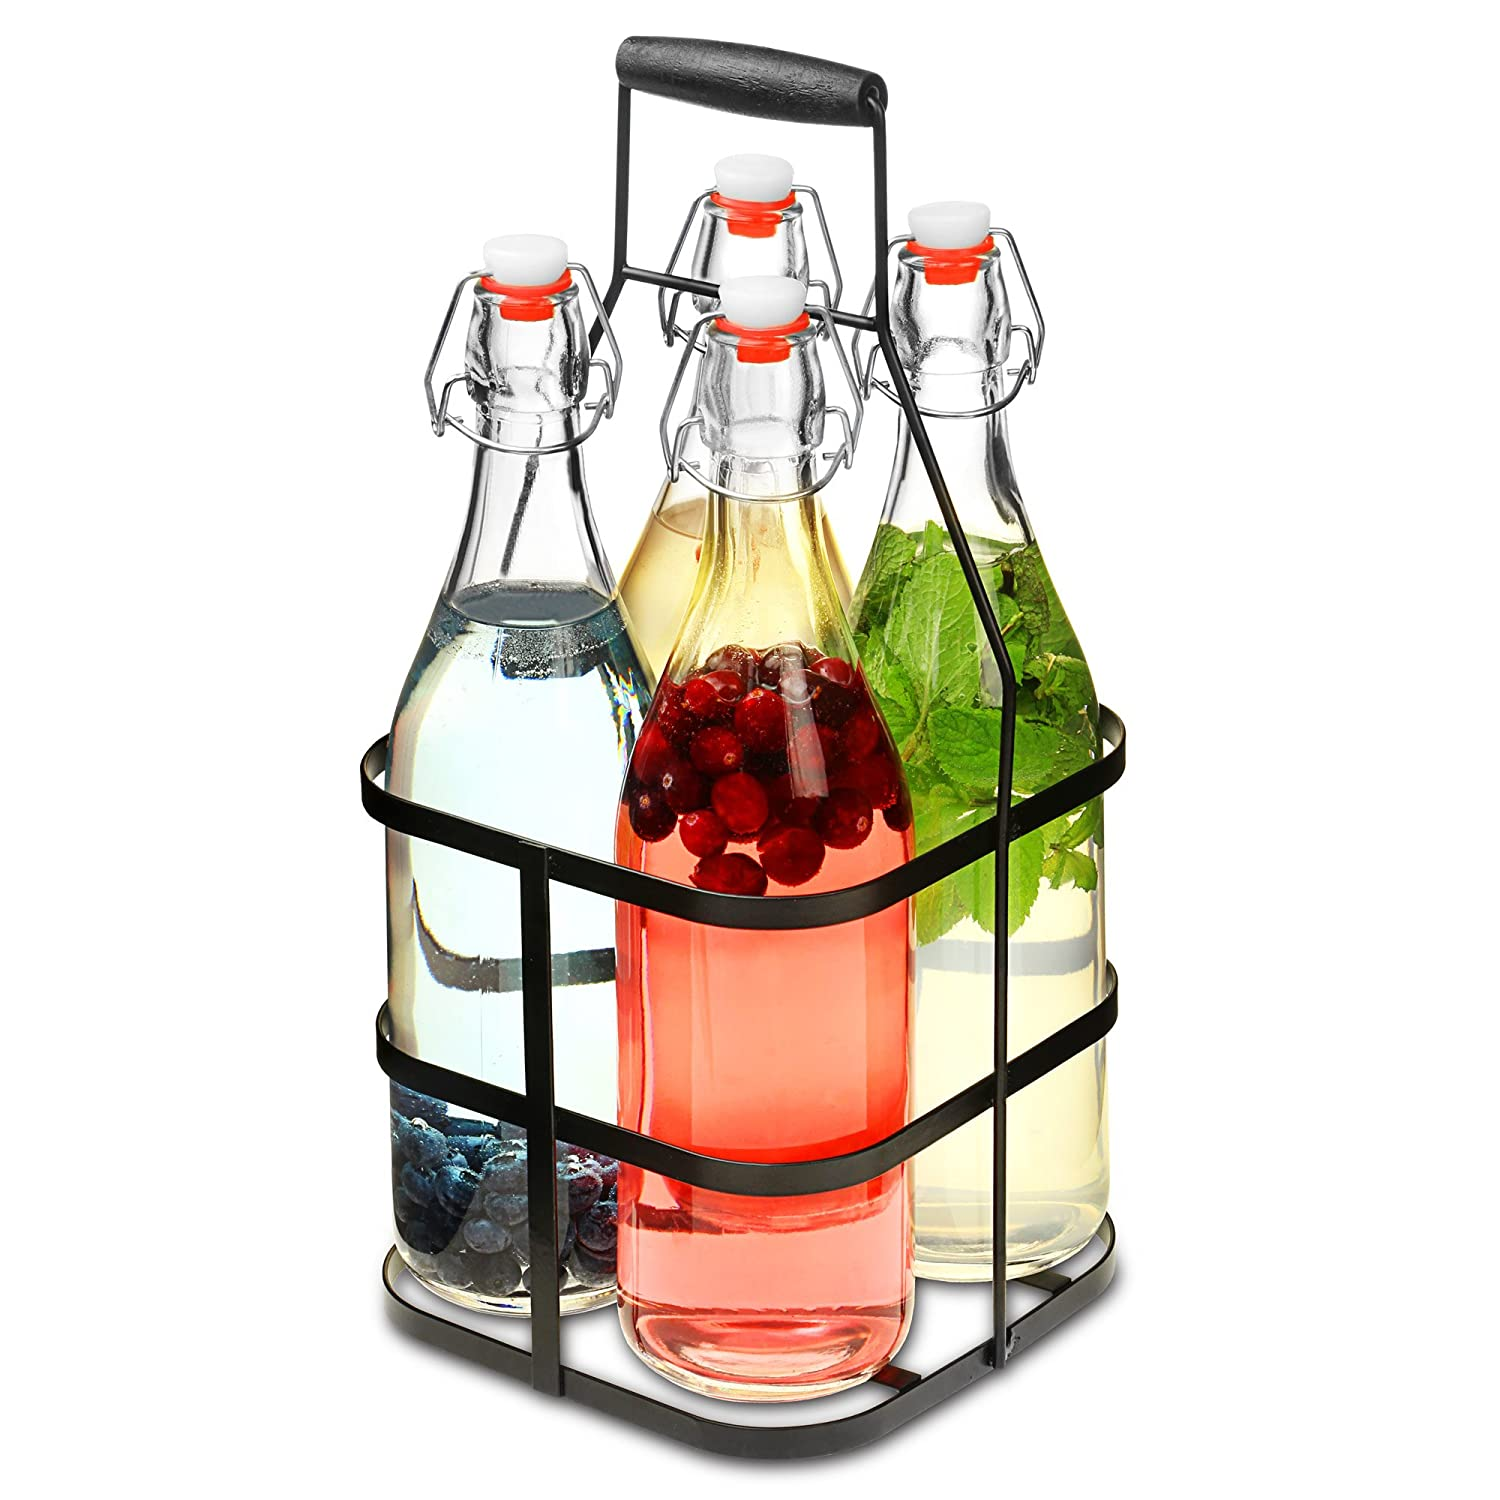 bar@drinkstuff Glass Clip Top Bottles with Metal Caddy 1ltr - Set of 4 Glass Swing Top Bottles in Metal Basket